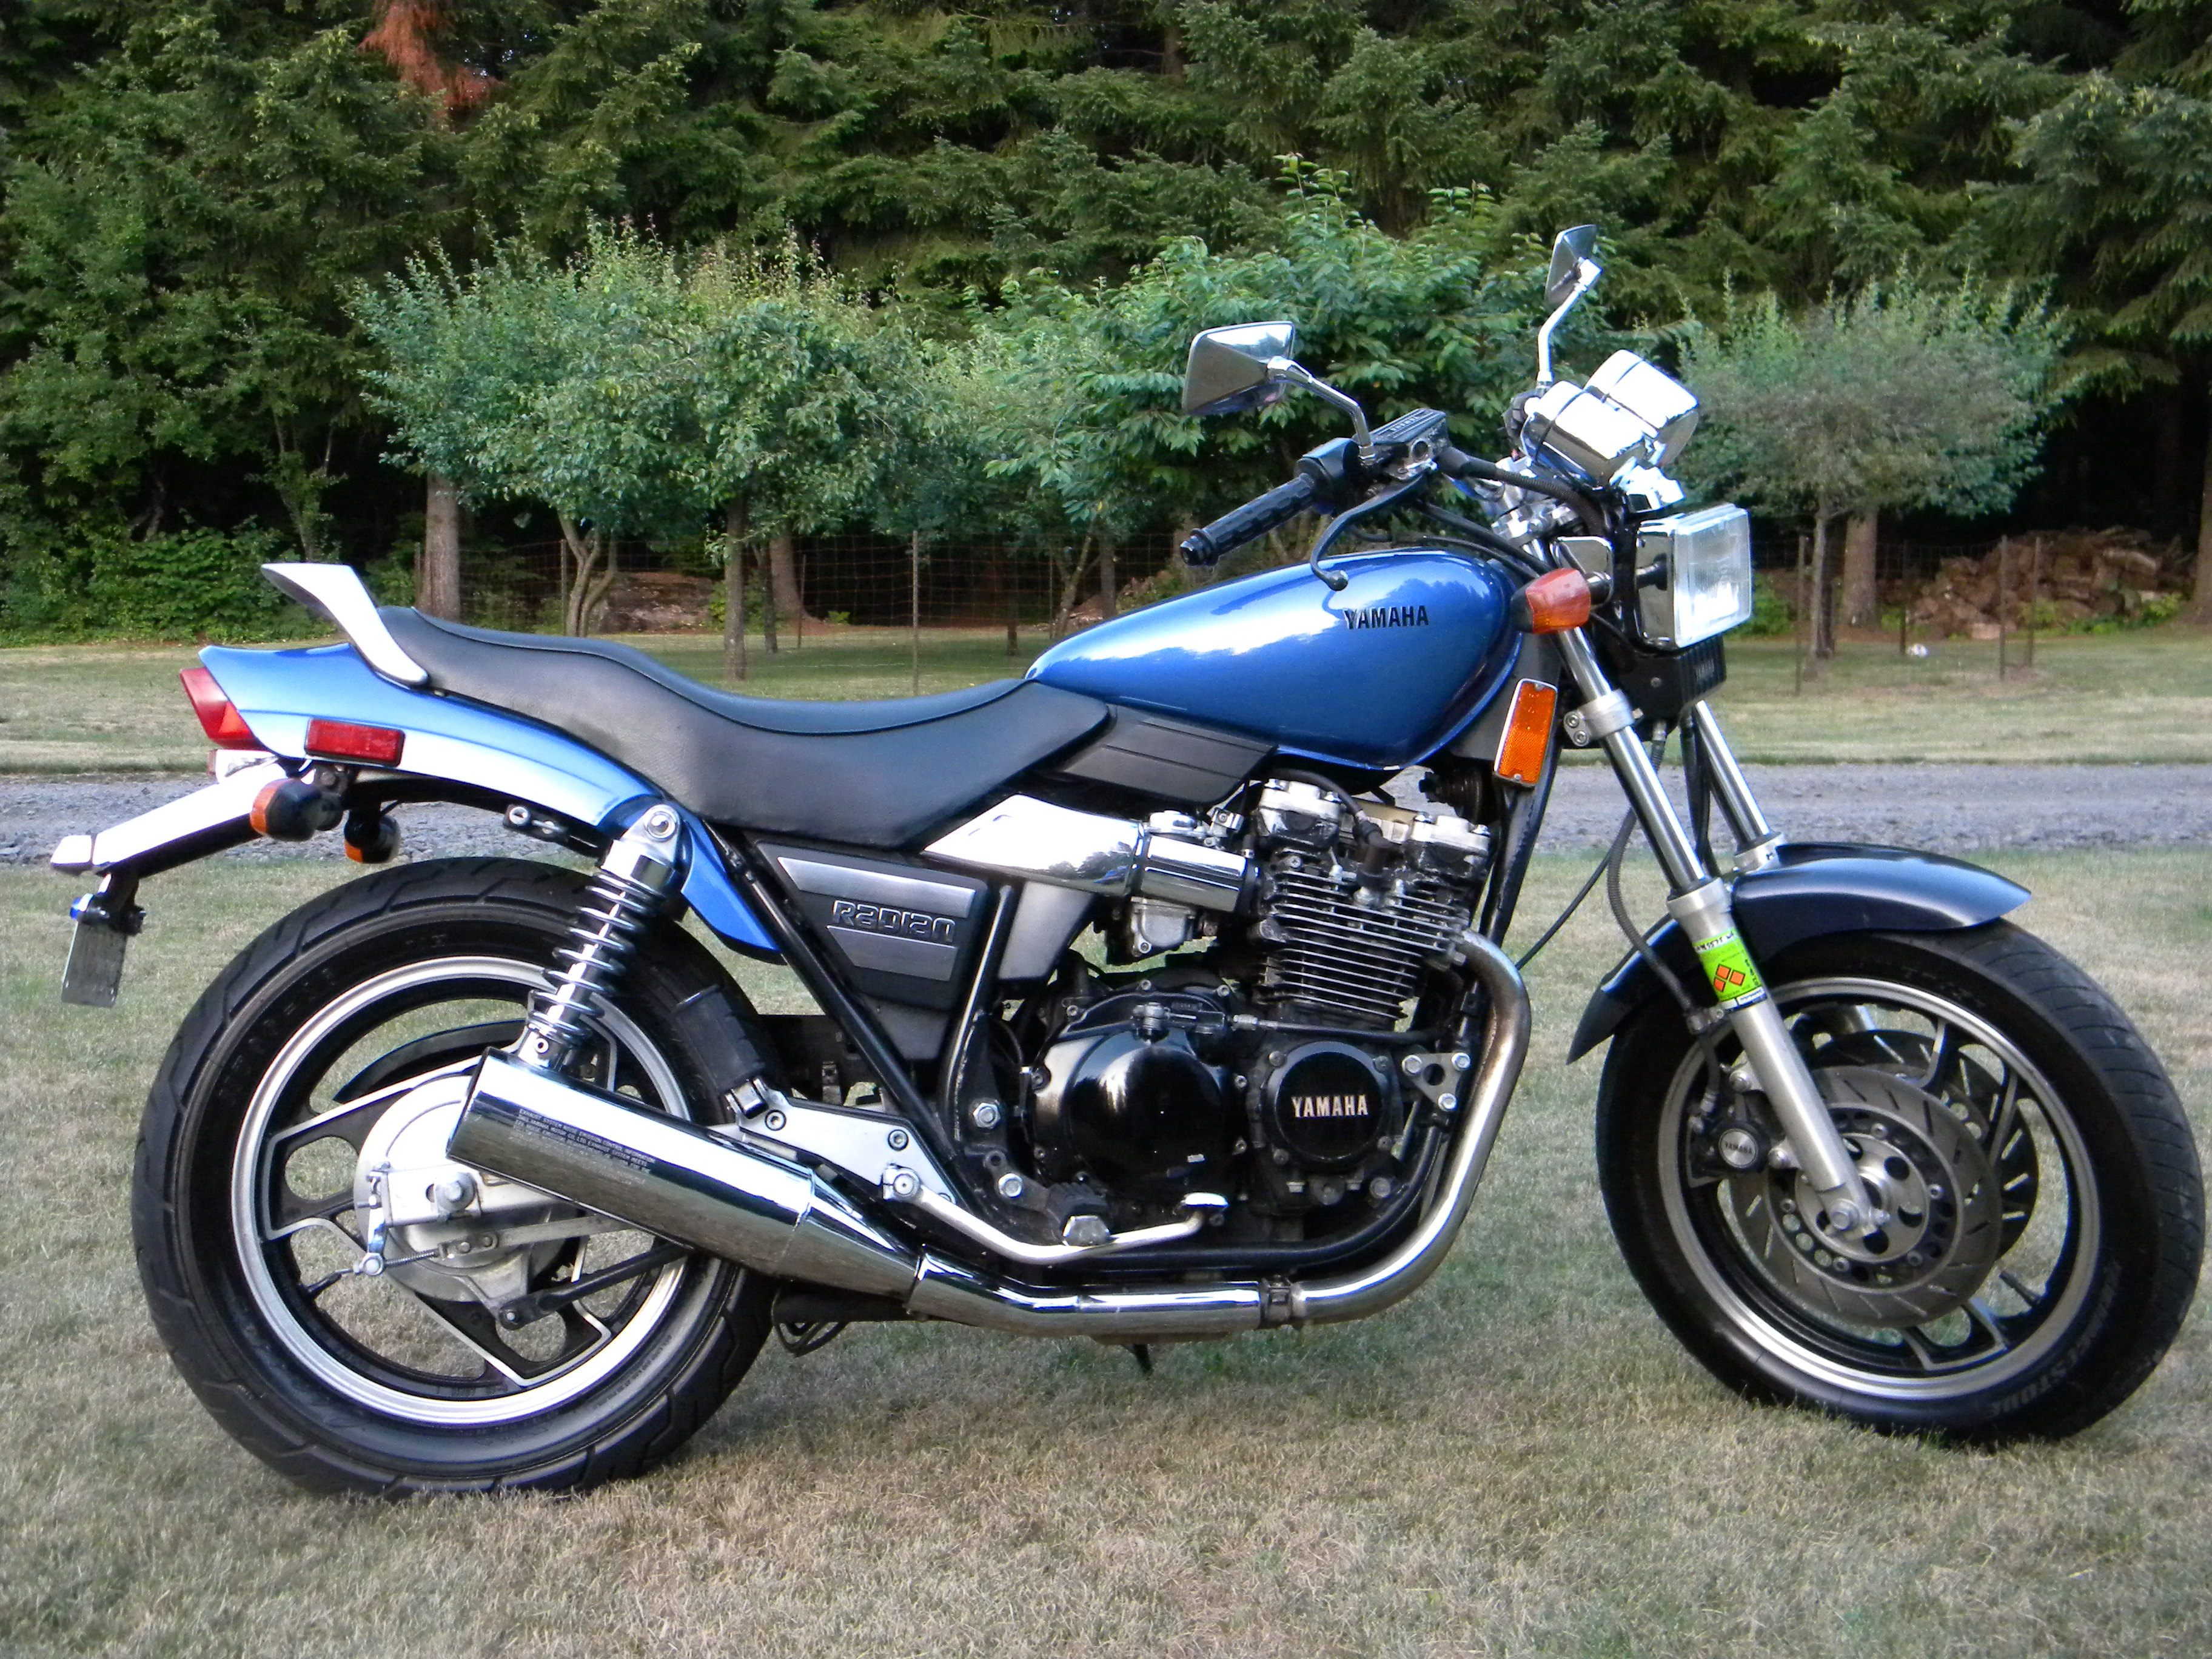 1986 Yamaha RD 350 F (reduced effect) #8